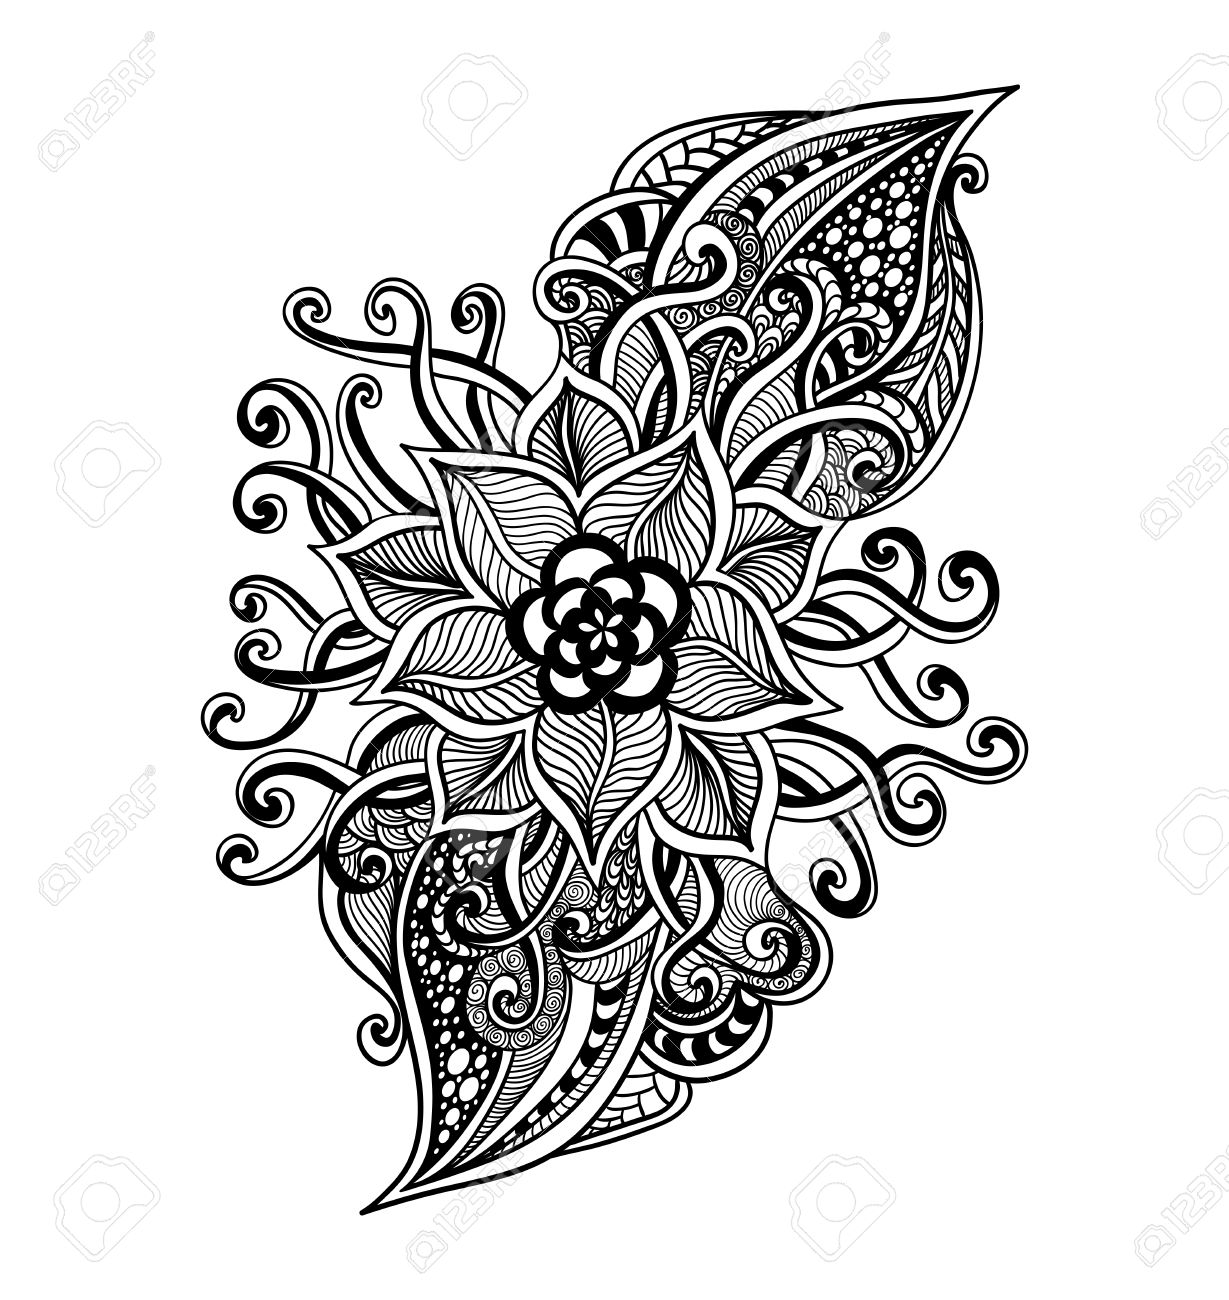 Zen Doodle Decorative Flower Black On White For Coloring Page